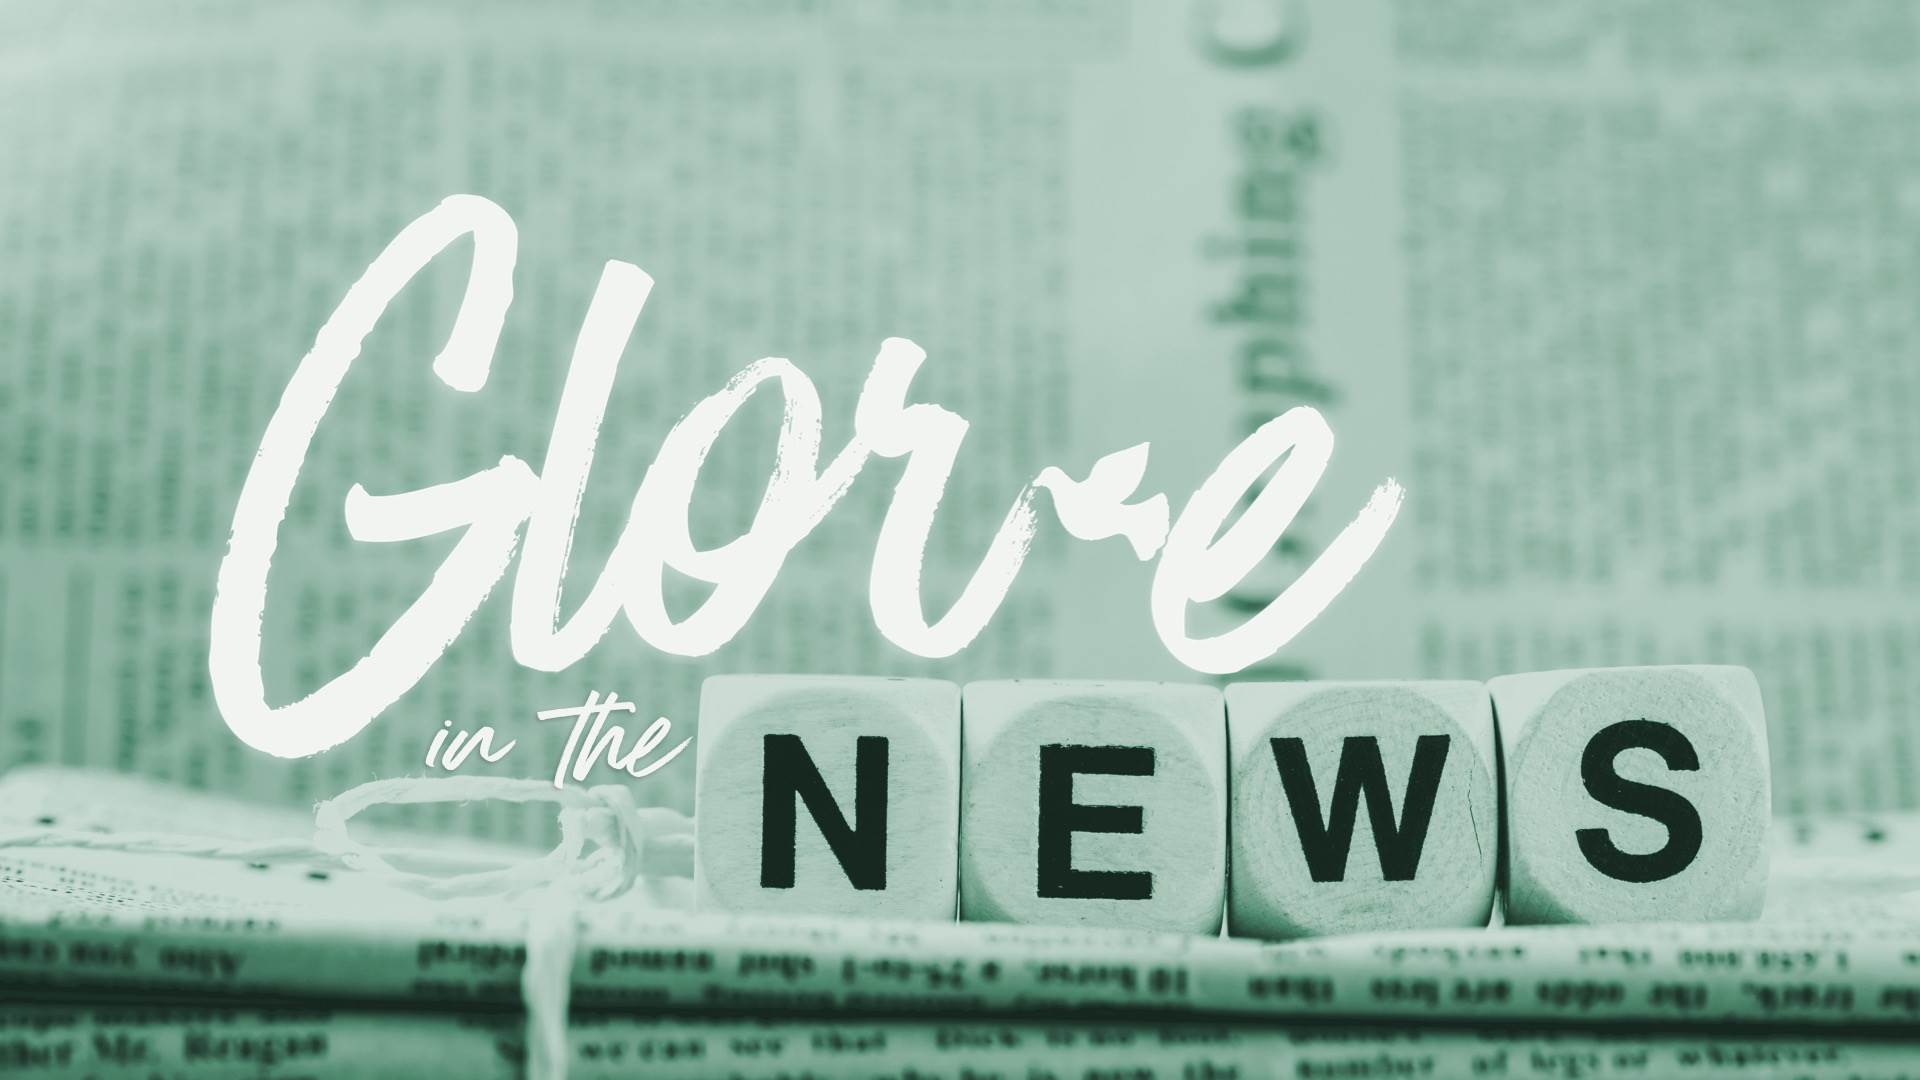 In the news: Glor-e, Your Christian Apparel Store